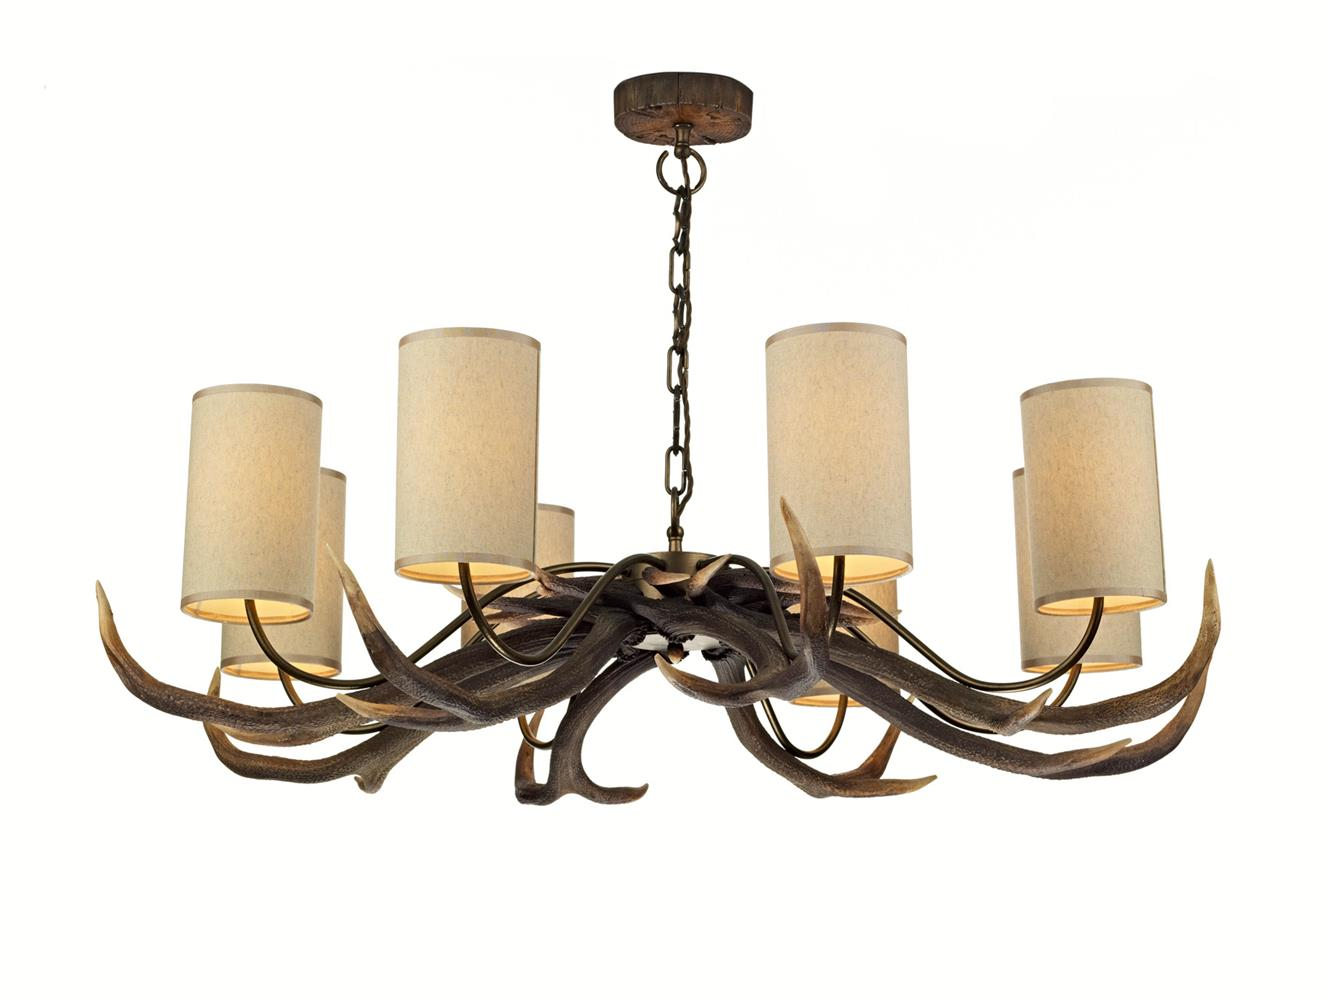 David Hunt Lighting ANT0829S Antler 8 Light Pendant Chandelier with Cream Shades